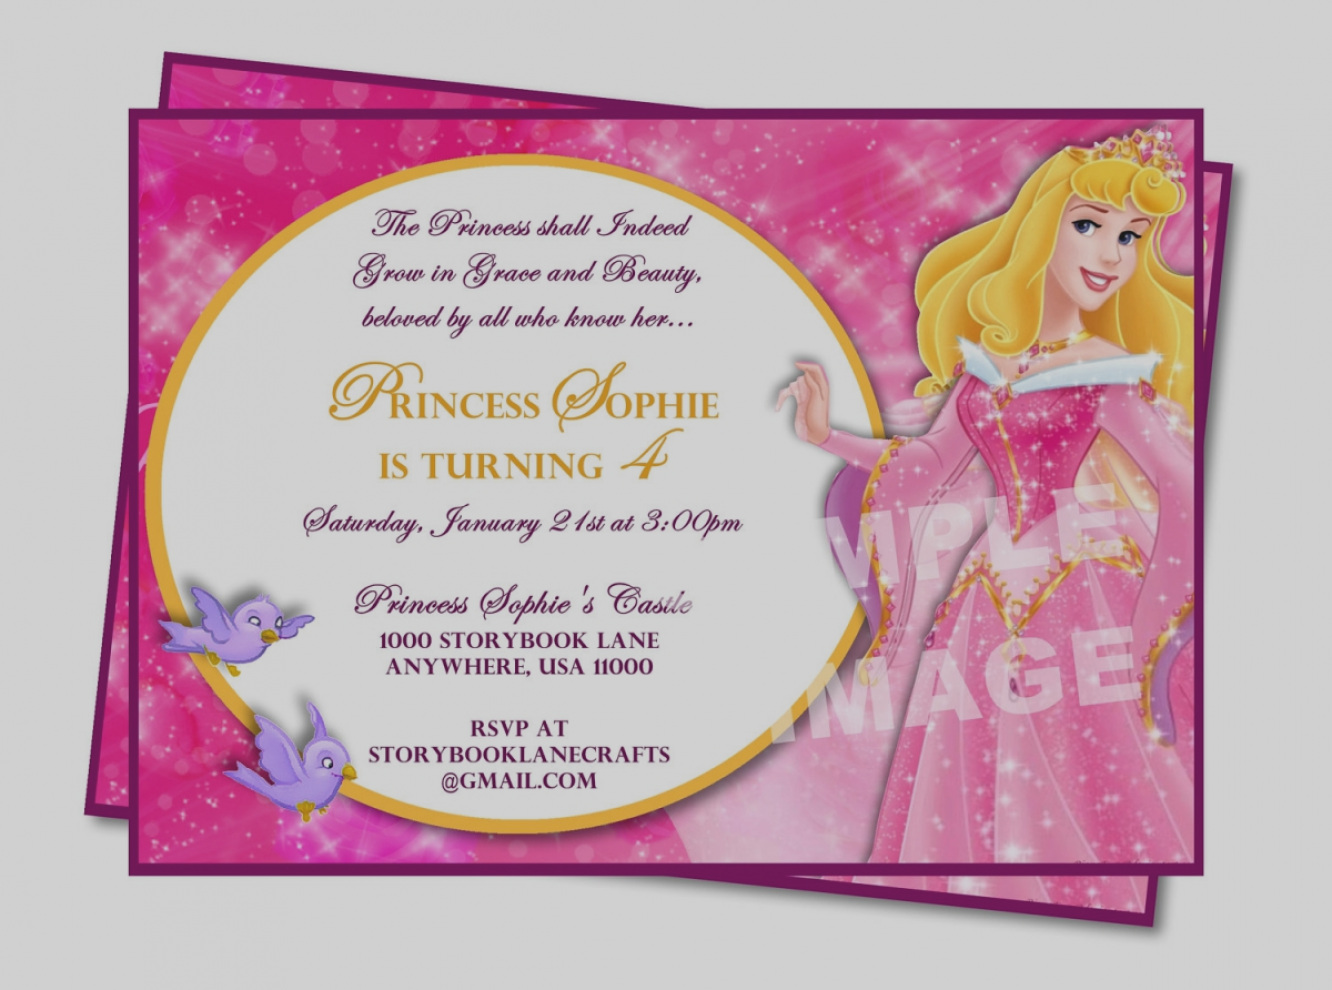 7th birthday invitation message ; wonderful-of-7th-birthday-invitation-message-seventh-wording-best-party-ideas